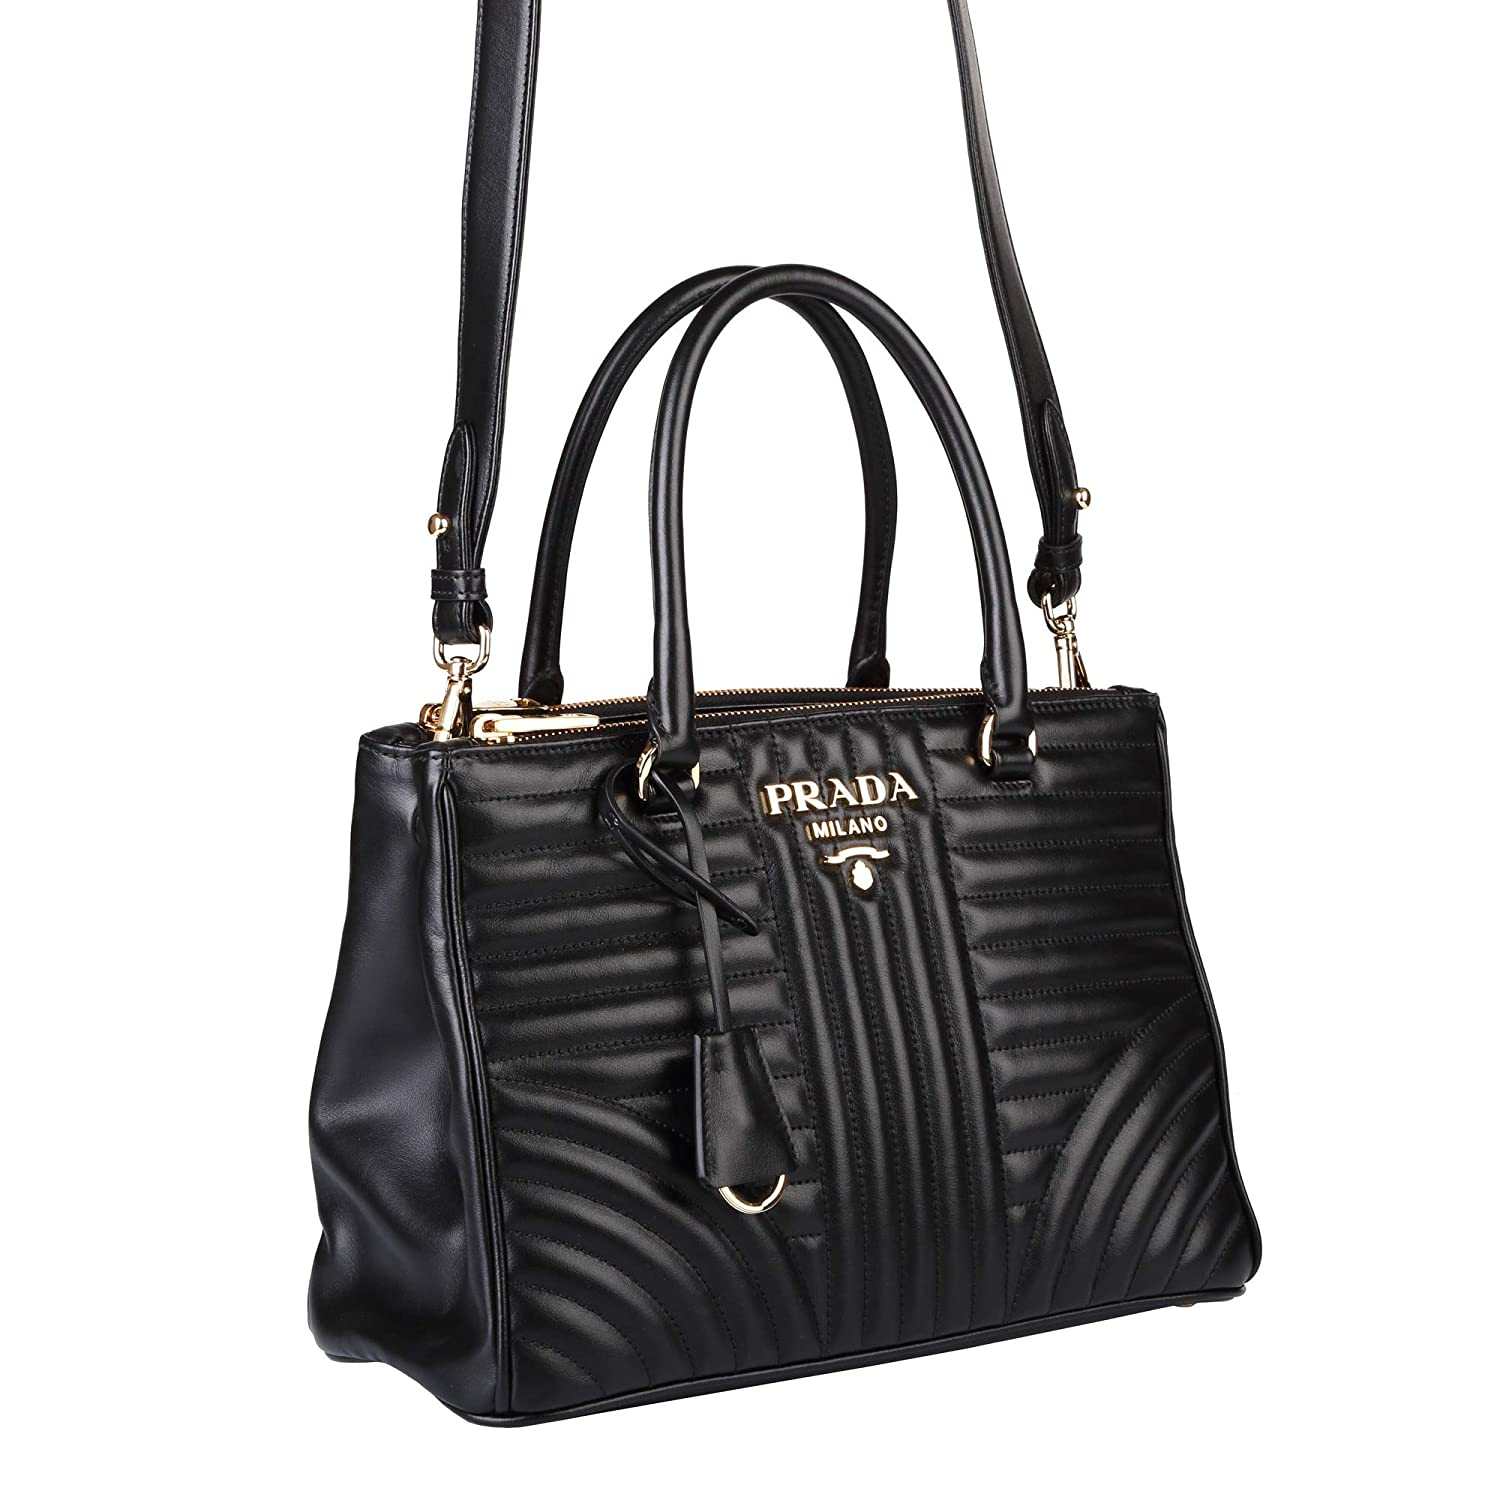 65eb3ab0c5b4 PRADA Bags Cross Body Shoulder Tote Handbags Black Leather 100% authentic:  Amazon.ca: Shoes & Handbags